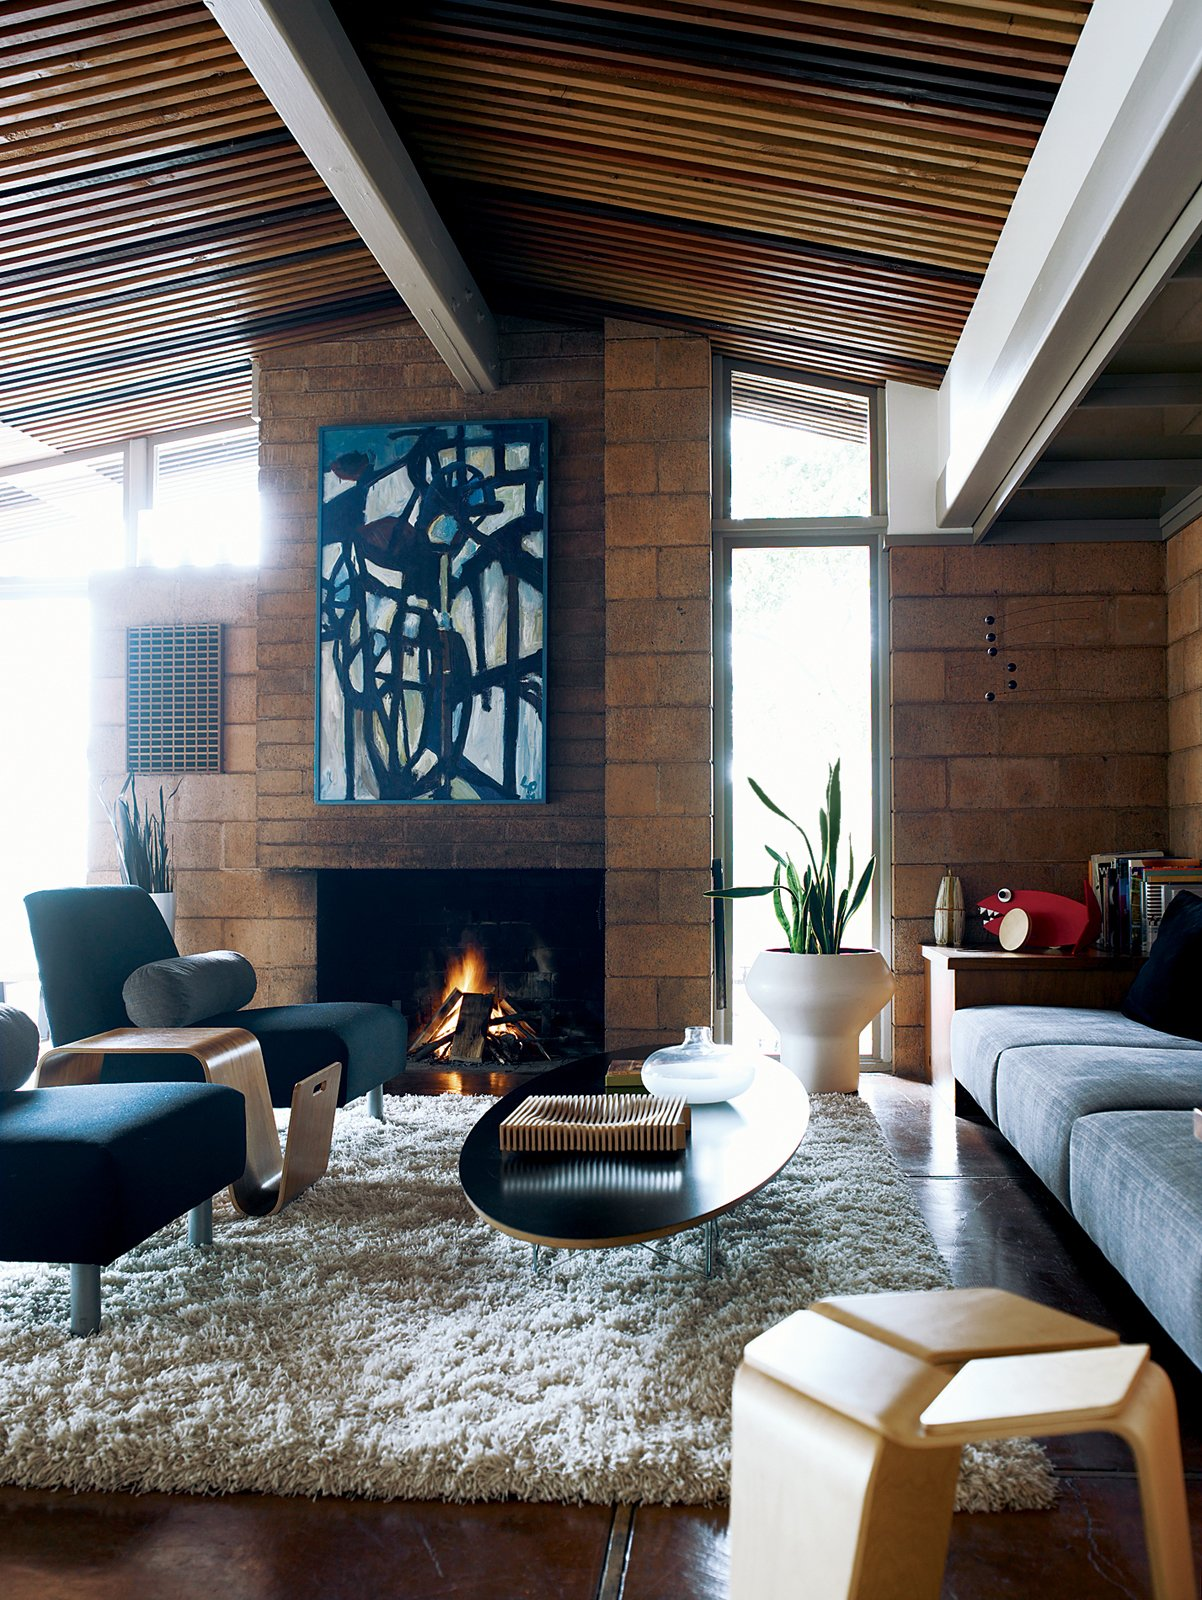 The chairs and end table in the living room are of Eric's design. Tagged: Living Room, Coffee Tables, End Tables, Sofa, Chair, Stools, Standard Layout Fireplace, Wood Burning Fireplace, and Rug Floor.  Photo 3 of 9 in Oakland Aesthetics